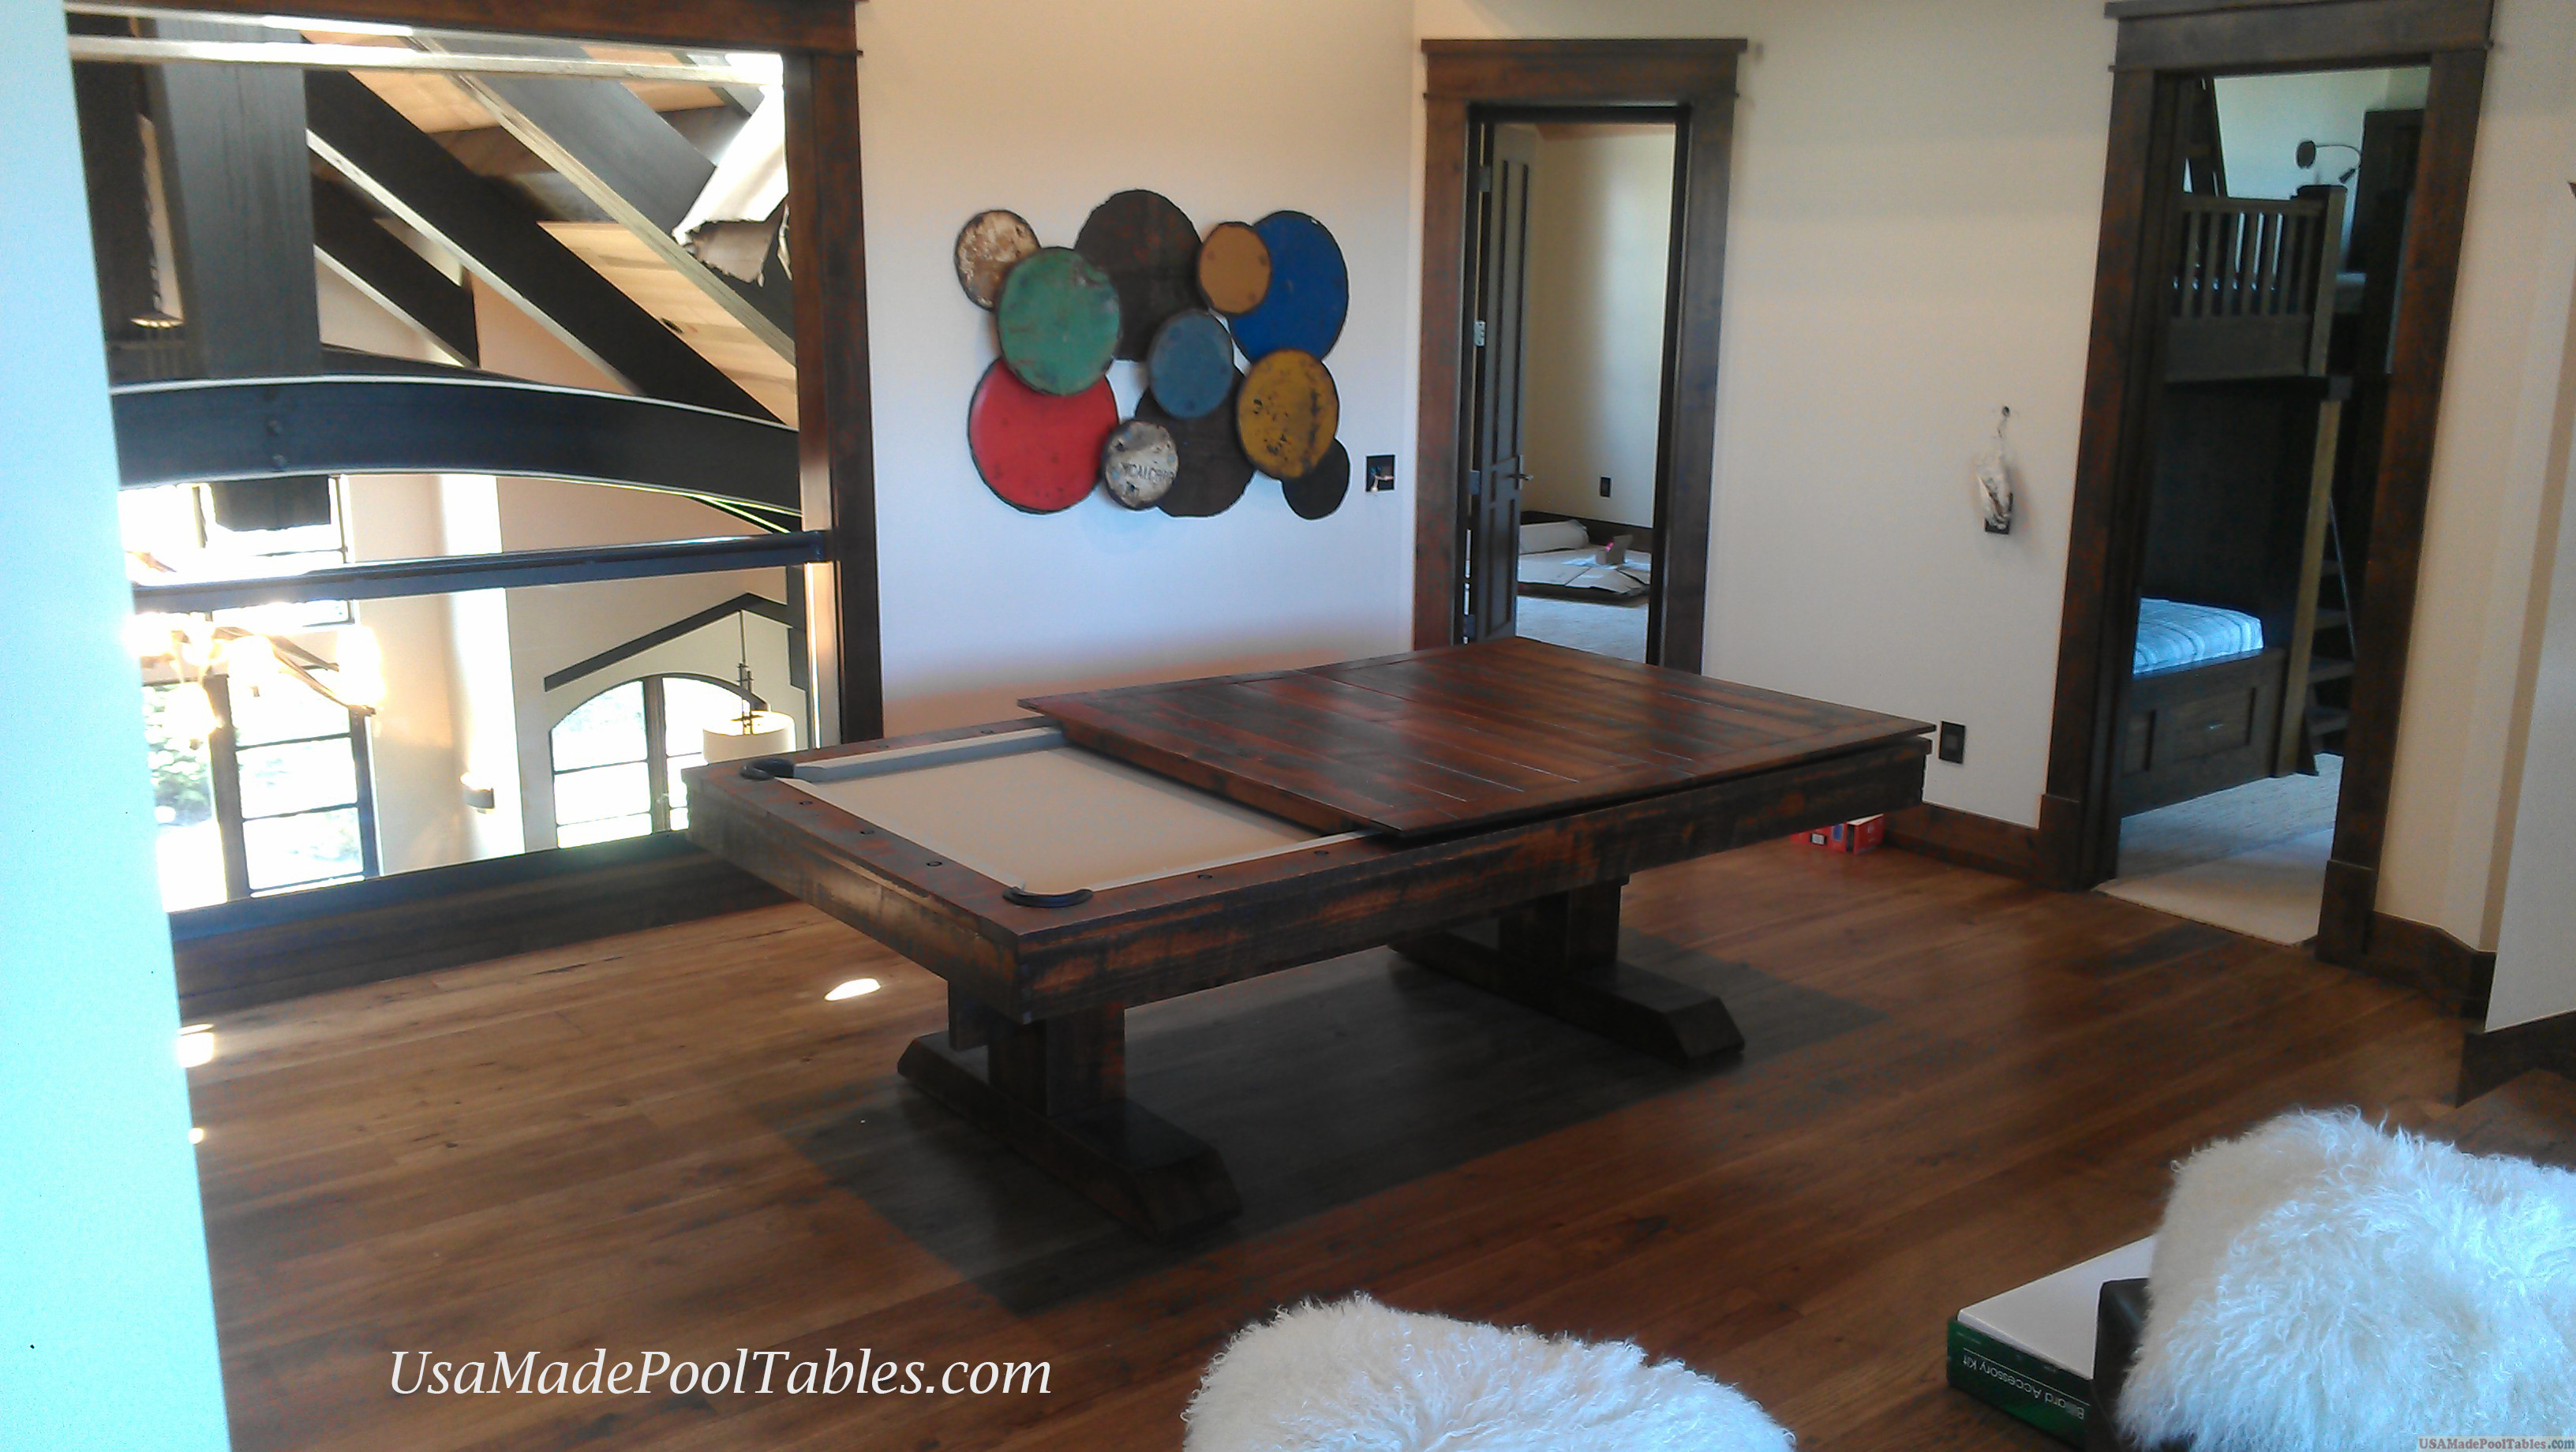 Rustic Table Rustic Pool Tables Rustic Dining Table